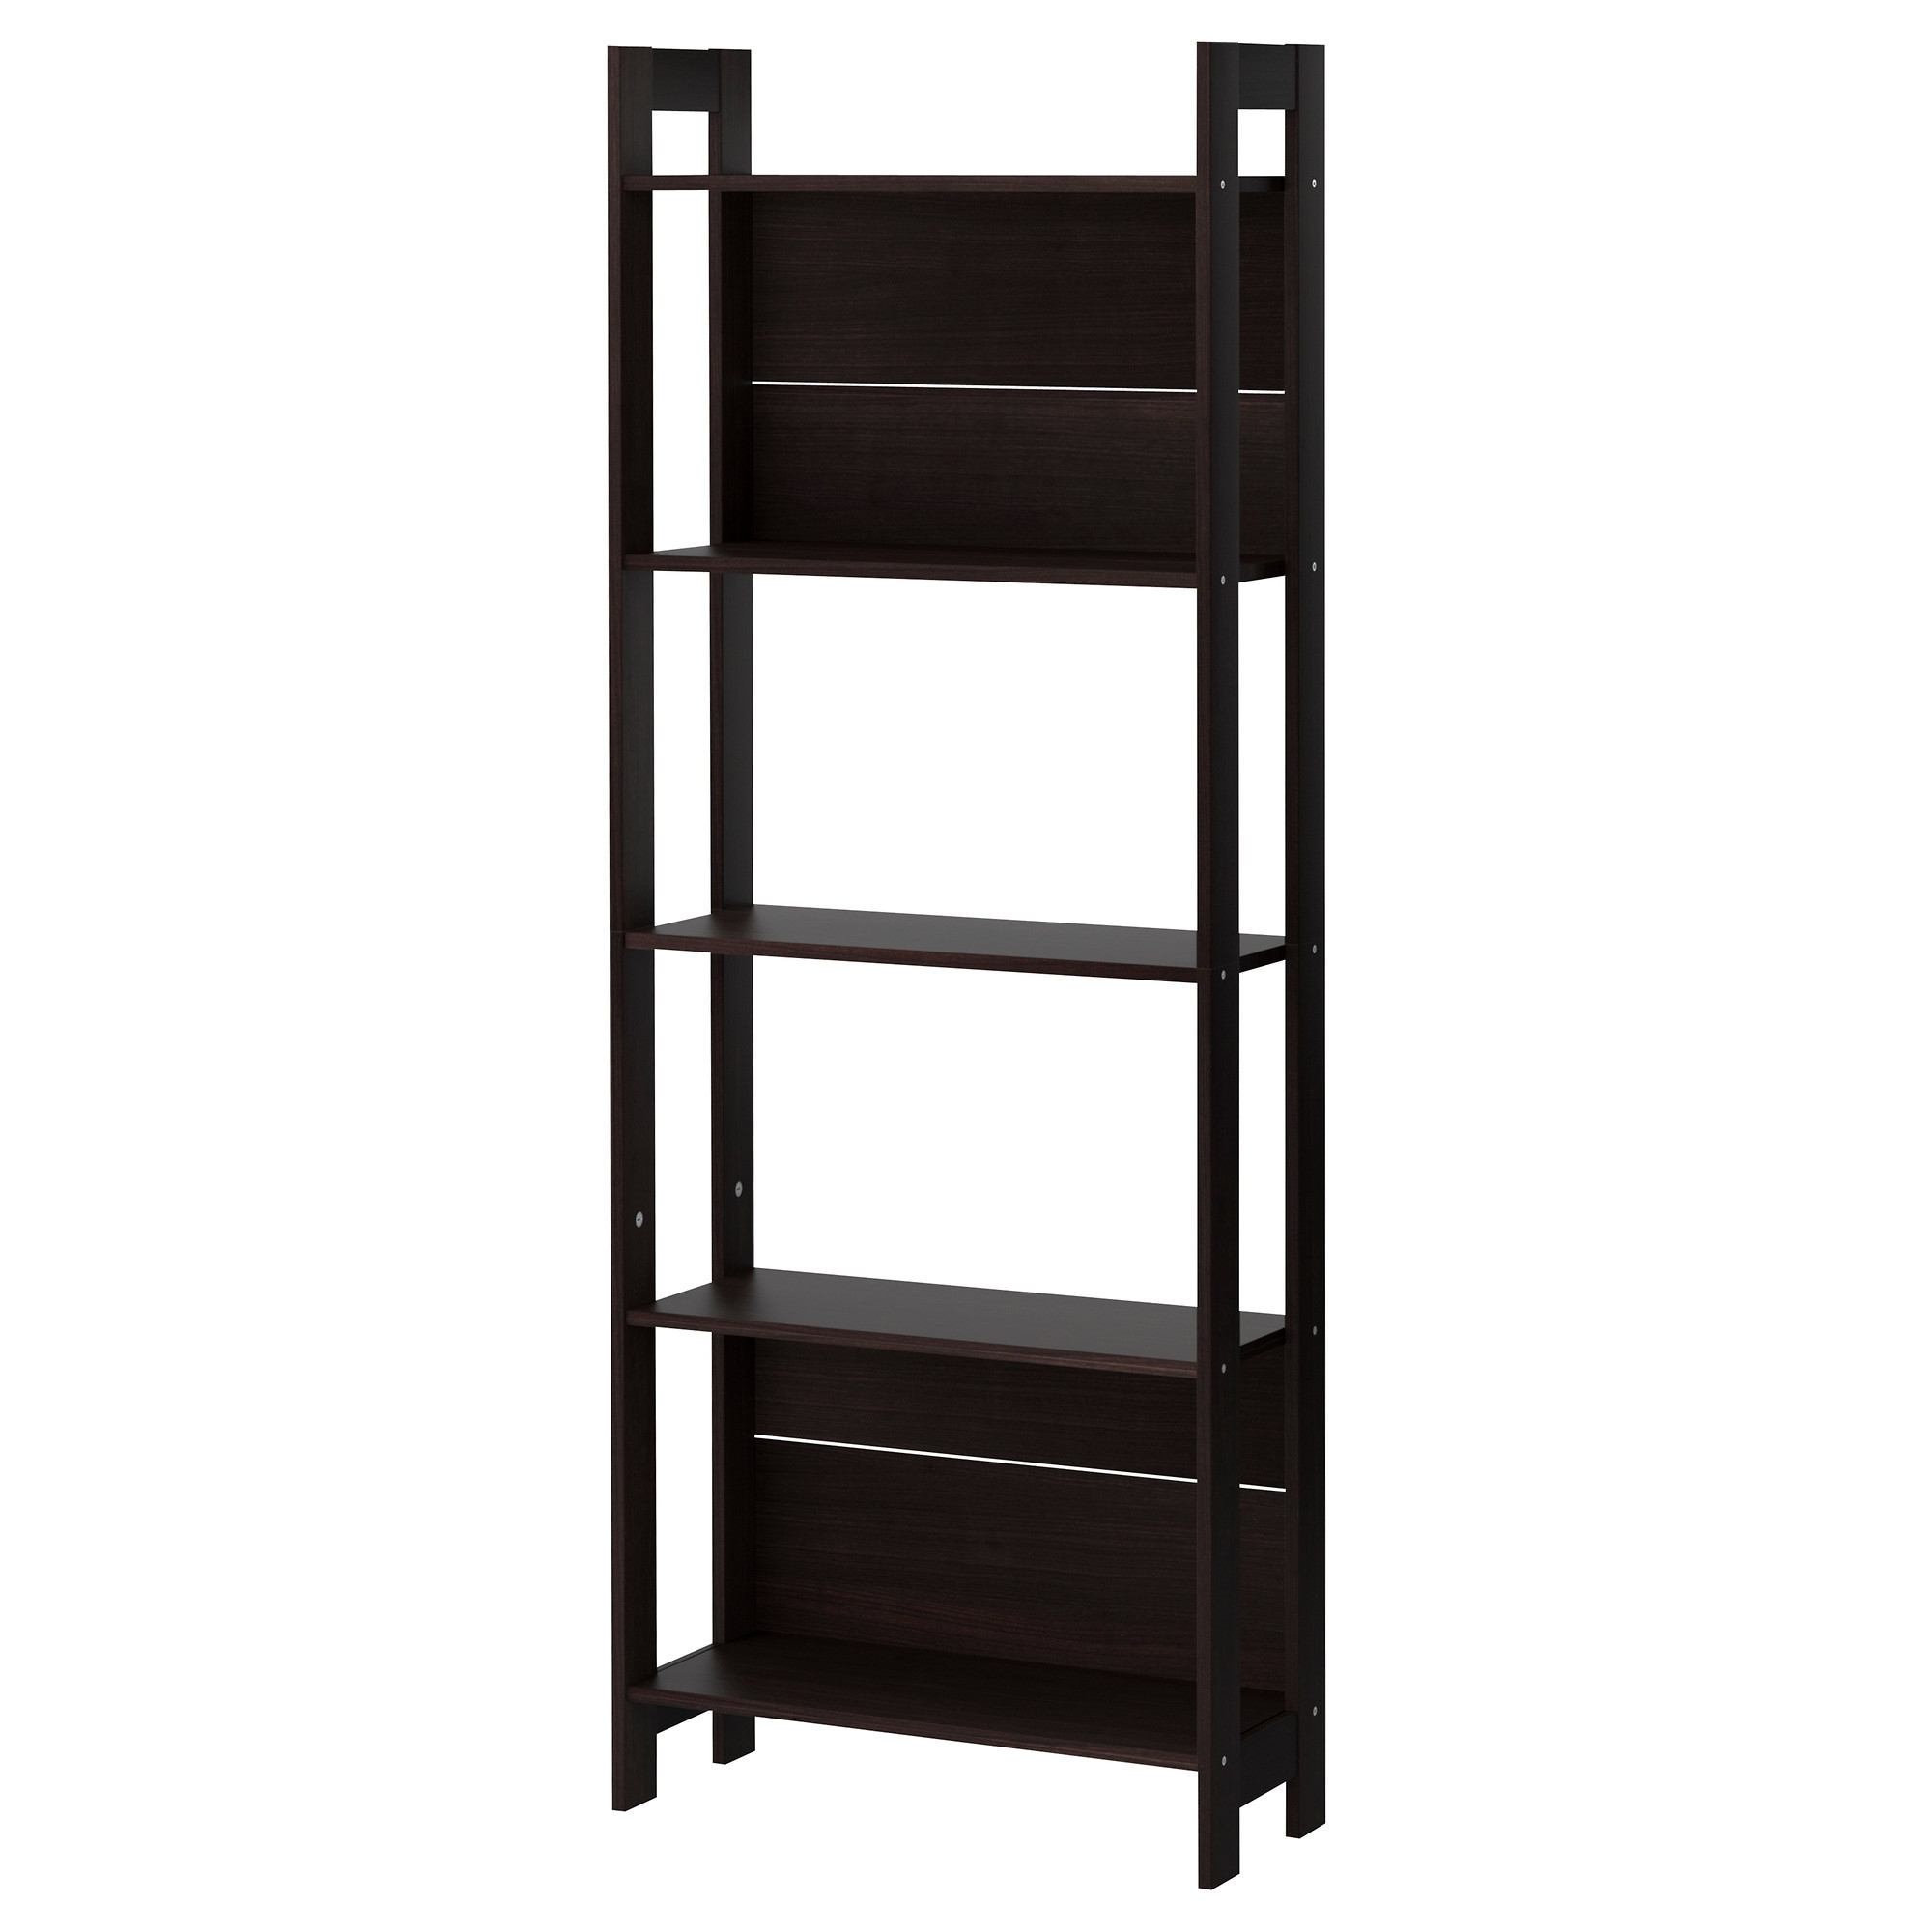 bookcase horizontal wide interesting shelves ikea folding and with bookcases glamorous bookshelf pics low exciting doors fascinating